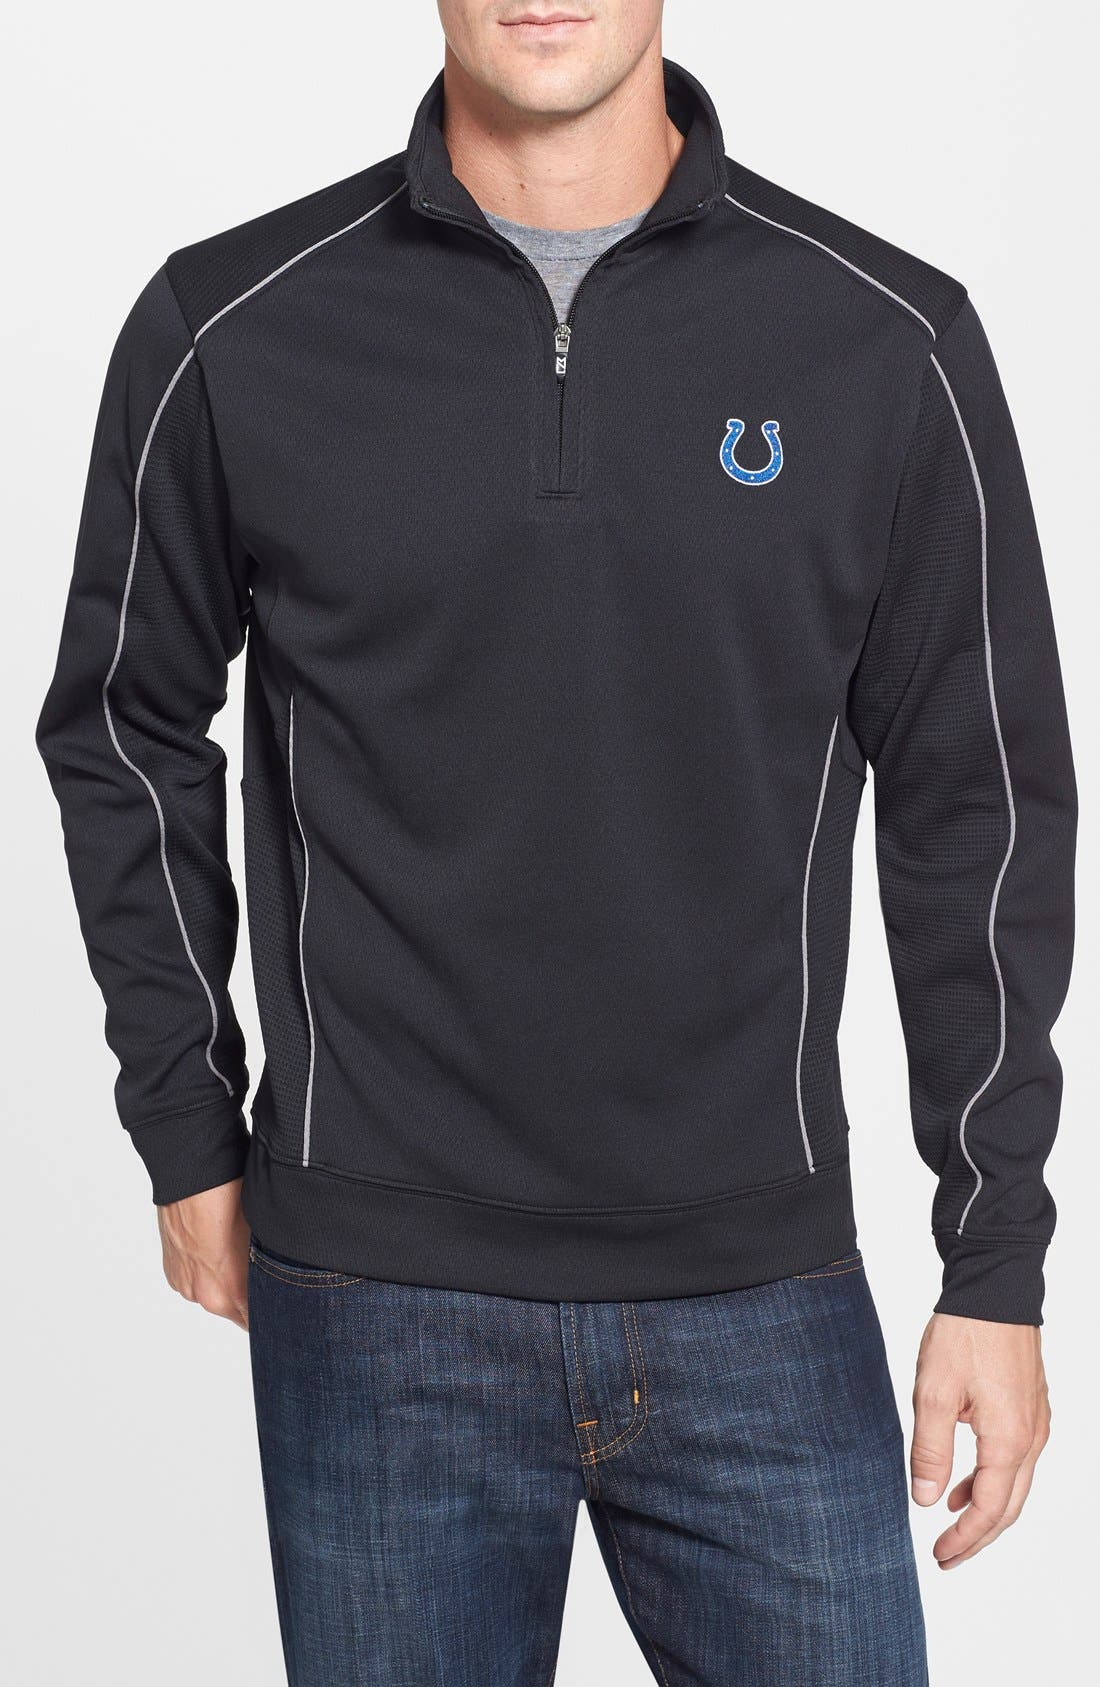 Indianapolis Colts - Edge DryTec Moisture Wicking Half Zip Pullover,                         Main,                         color, 001